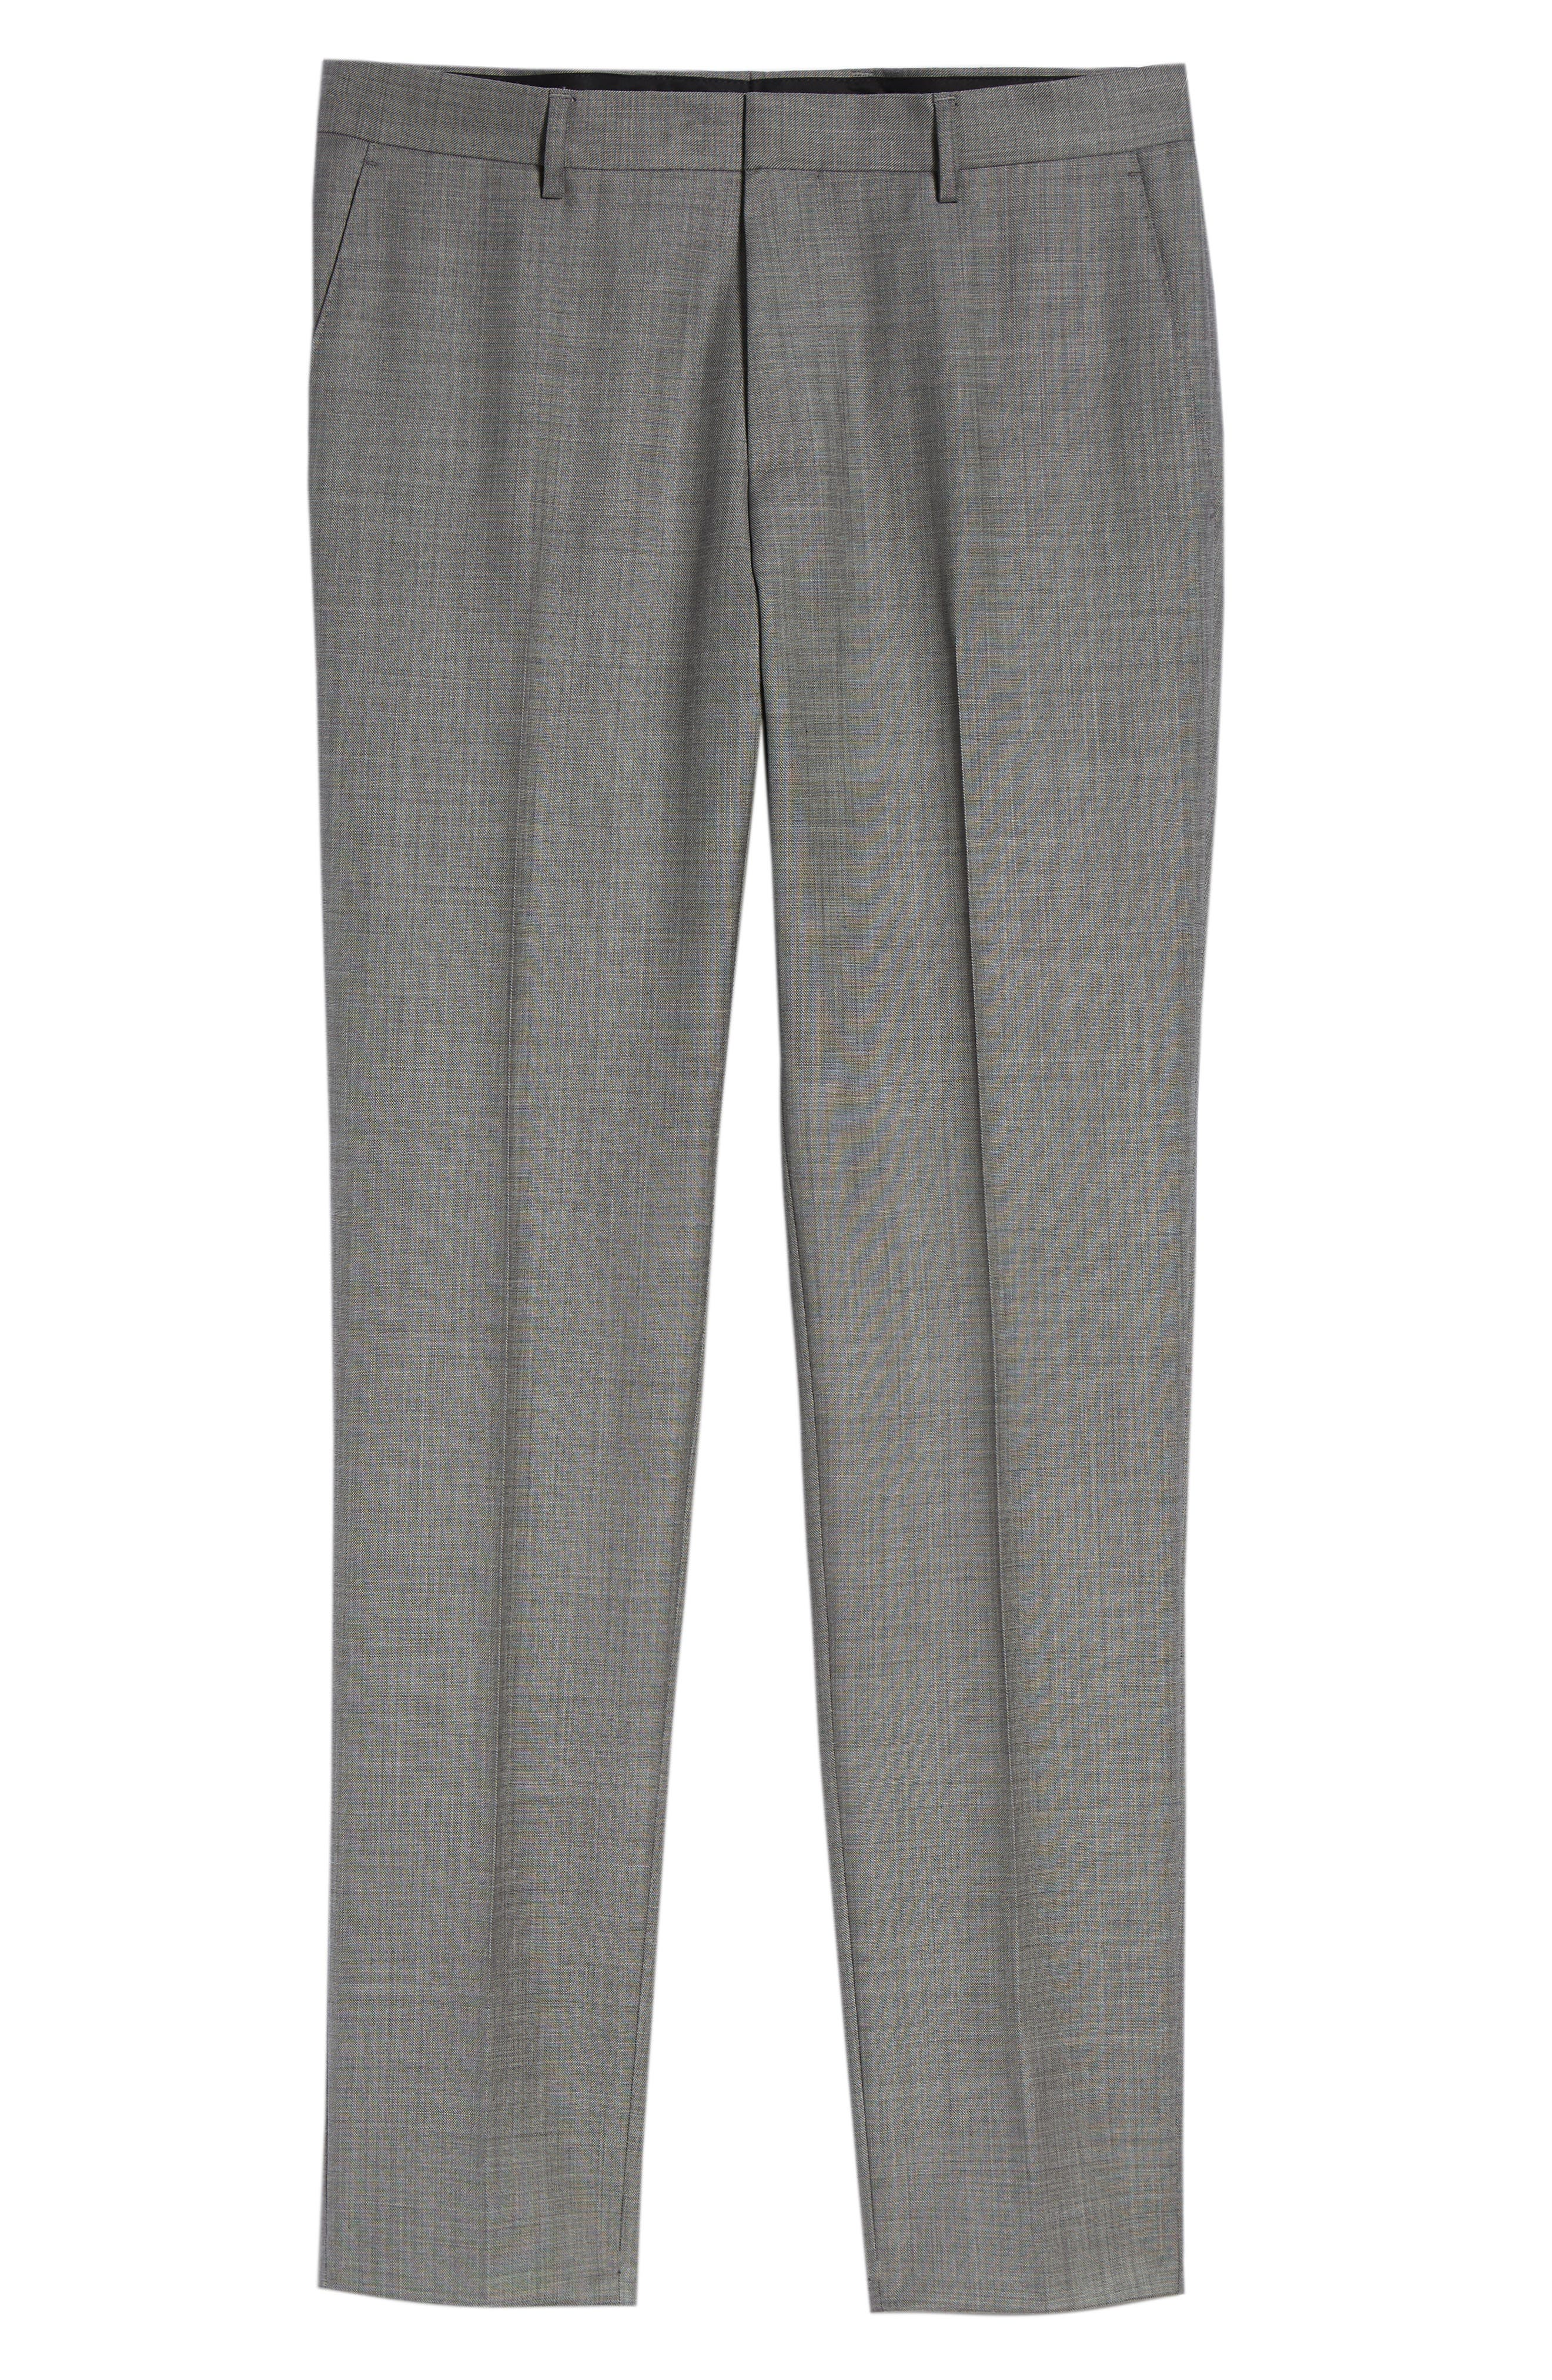 Genesis Flat Front Solid Wool Trousers,                             Alternate thumbnail 6, color,                             GREY